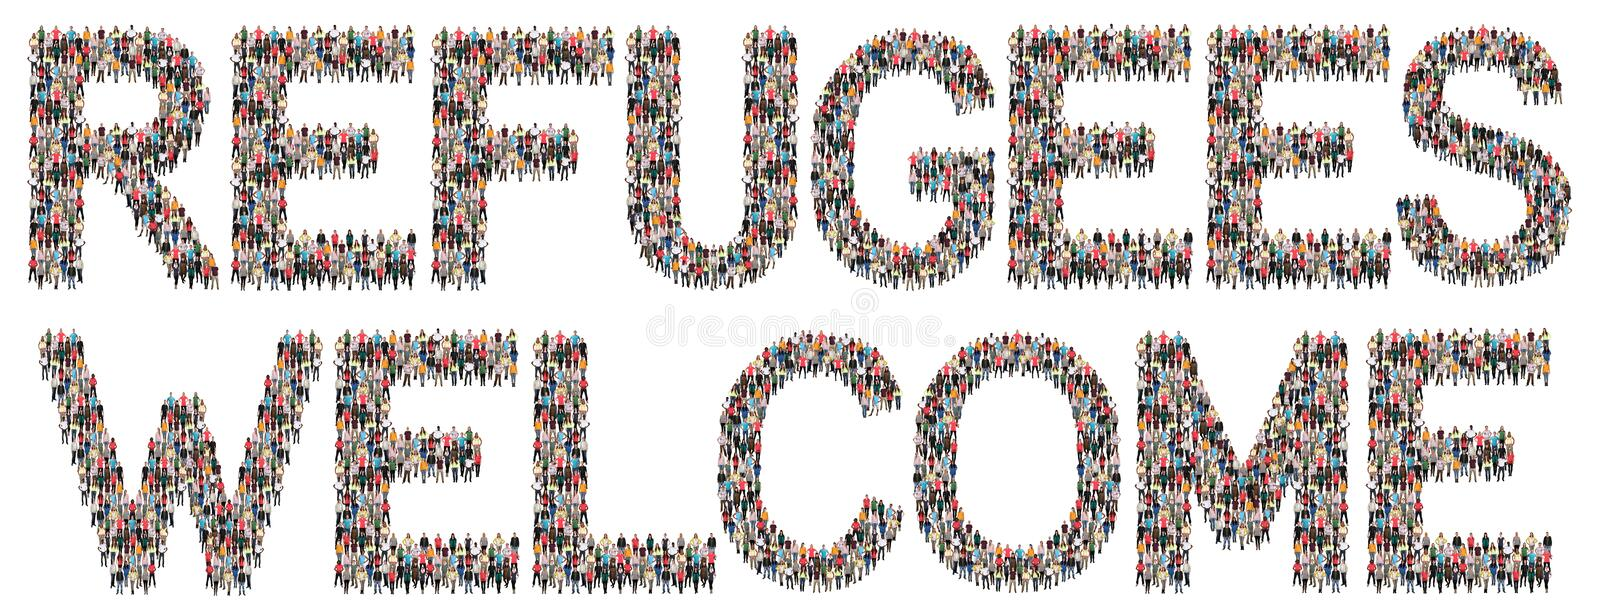 Refugees welcome immigrants multi ethnic group of people royalty free stock images